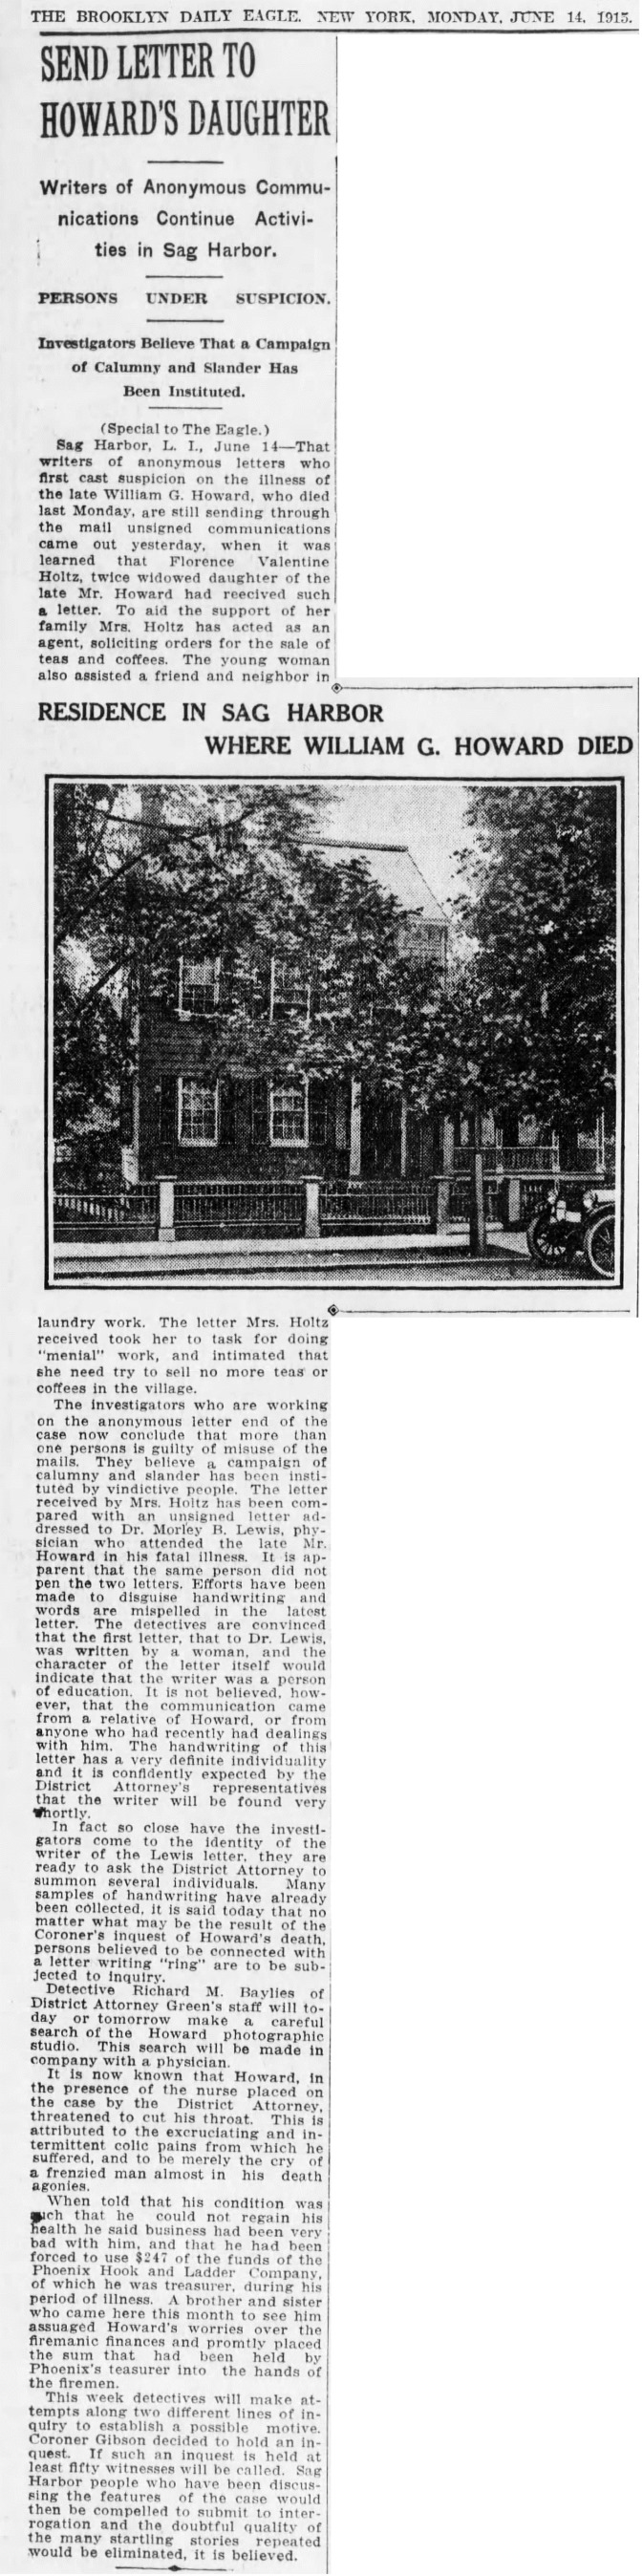 A25  6-14-1915 The Brooklyn Daily Eagle Monday  Report